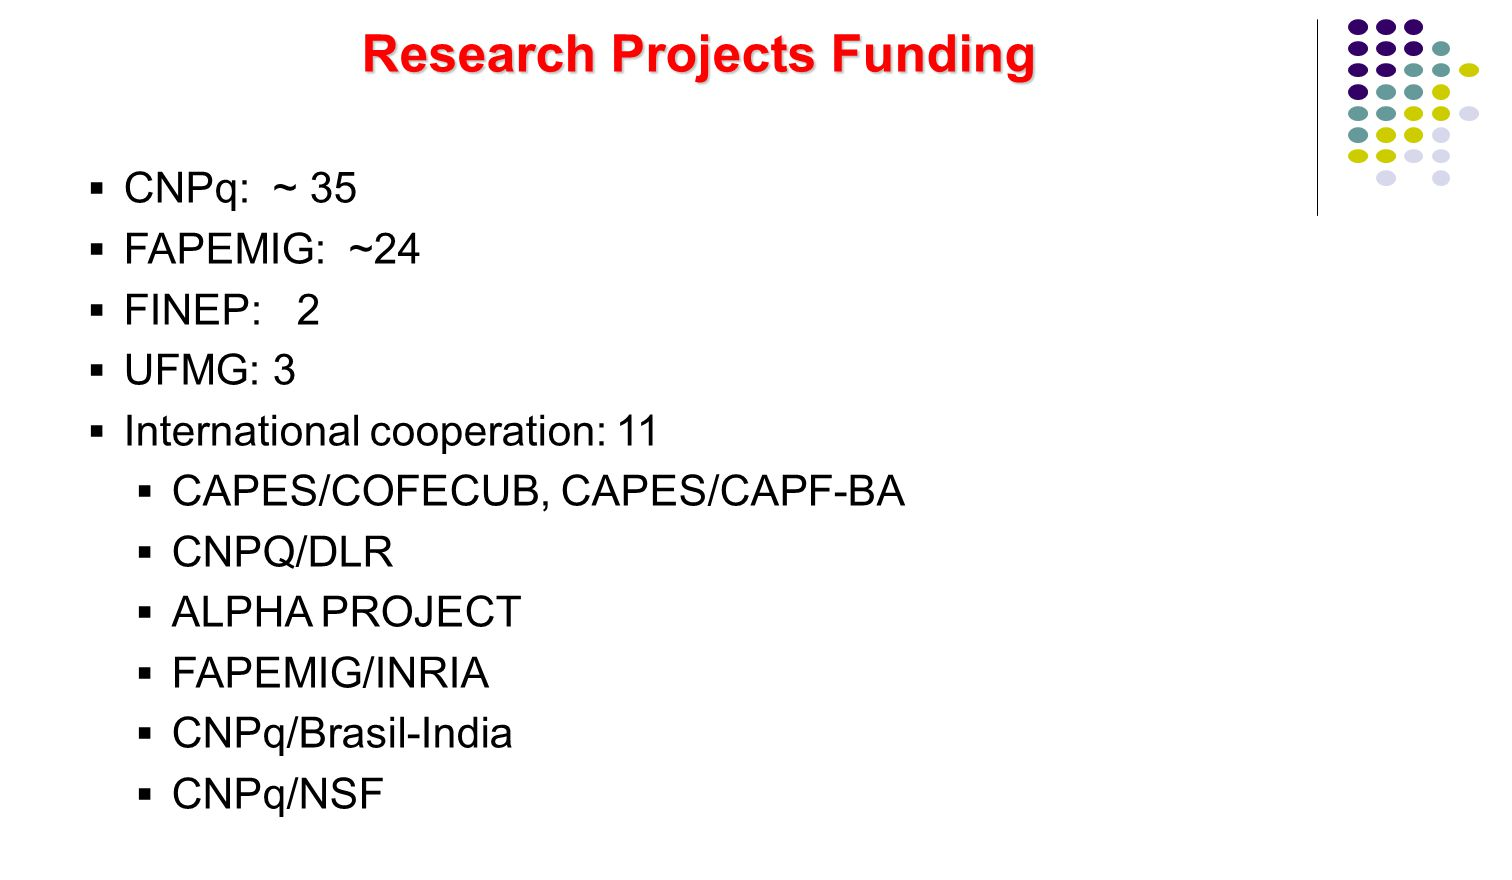 Research Projects Funding CNPq: ~ 35 FAPEMIG: ~24 FINEP: 2 UFMG: 3 International cooperation: 11 CAPES/COFECUB, CAPES/CAPF-BA CNPQ/DLR ALPHA PROJECT FAPEMIG/INRIA CNPq/Brasil-India CNPq/NSF